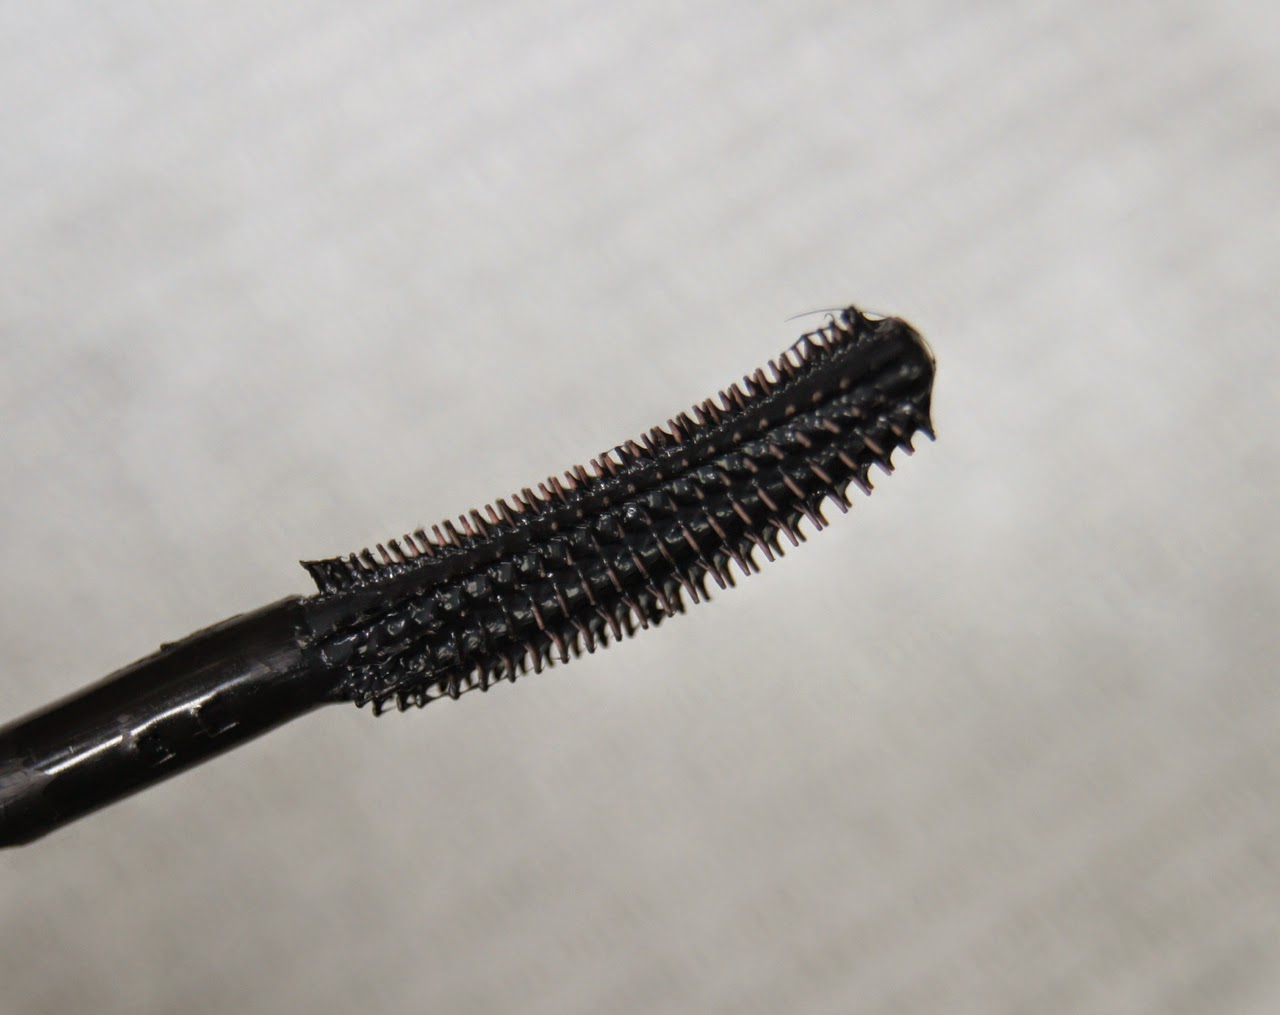 benefit roller lash mascara wand worth the hype